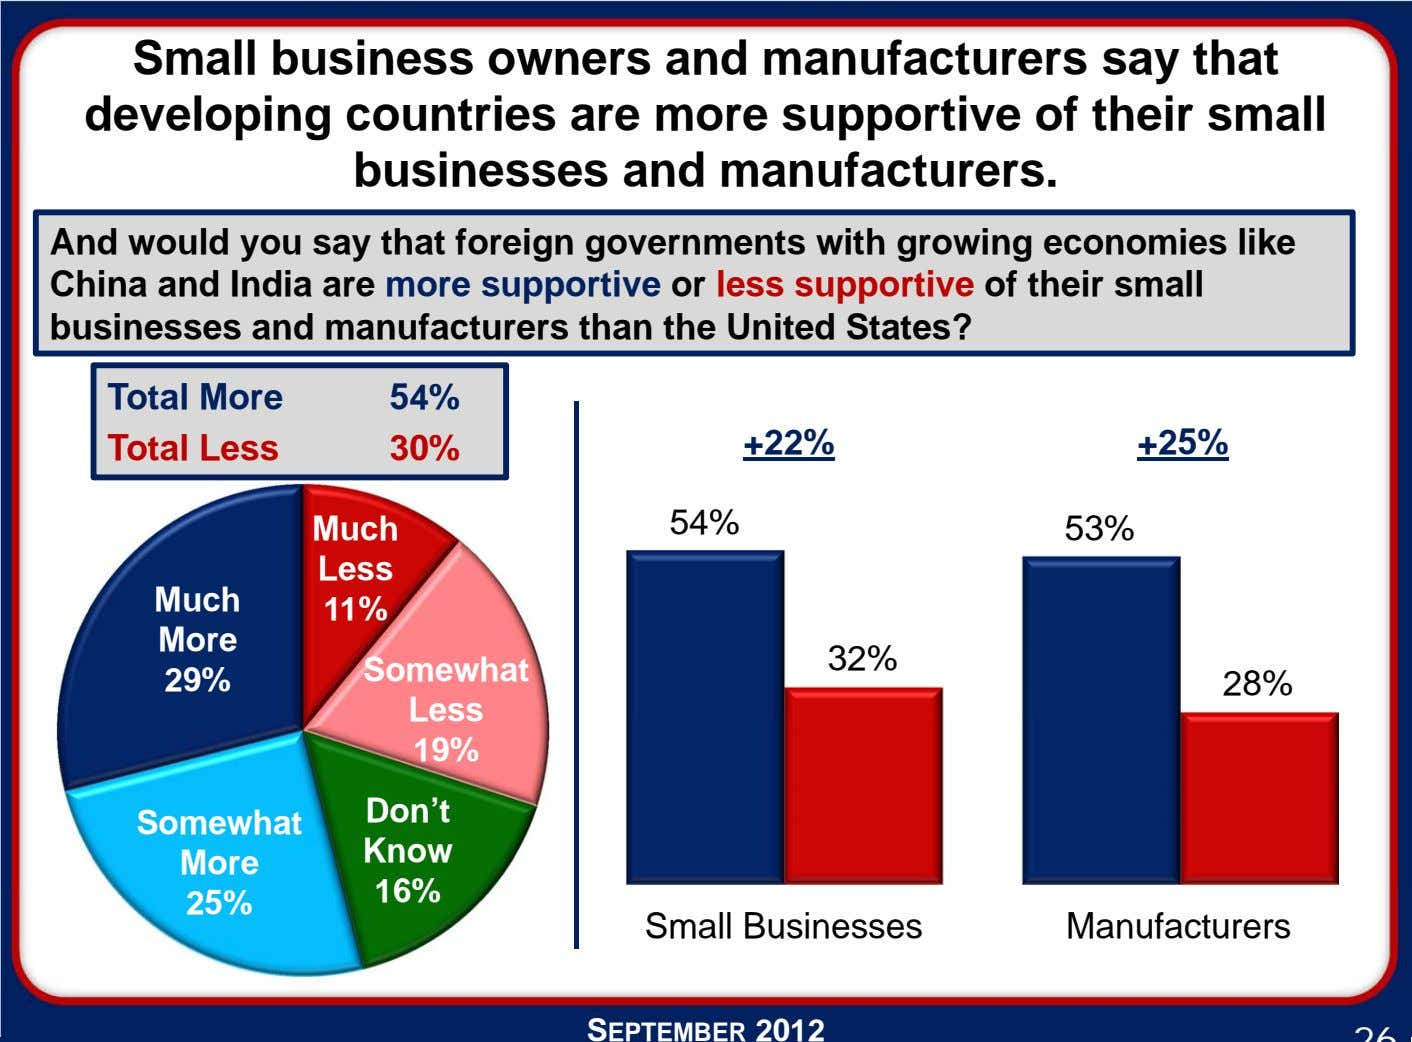 Small business owners and manufacturers say that developing countries are more supportive of their small